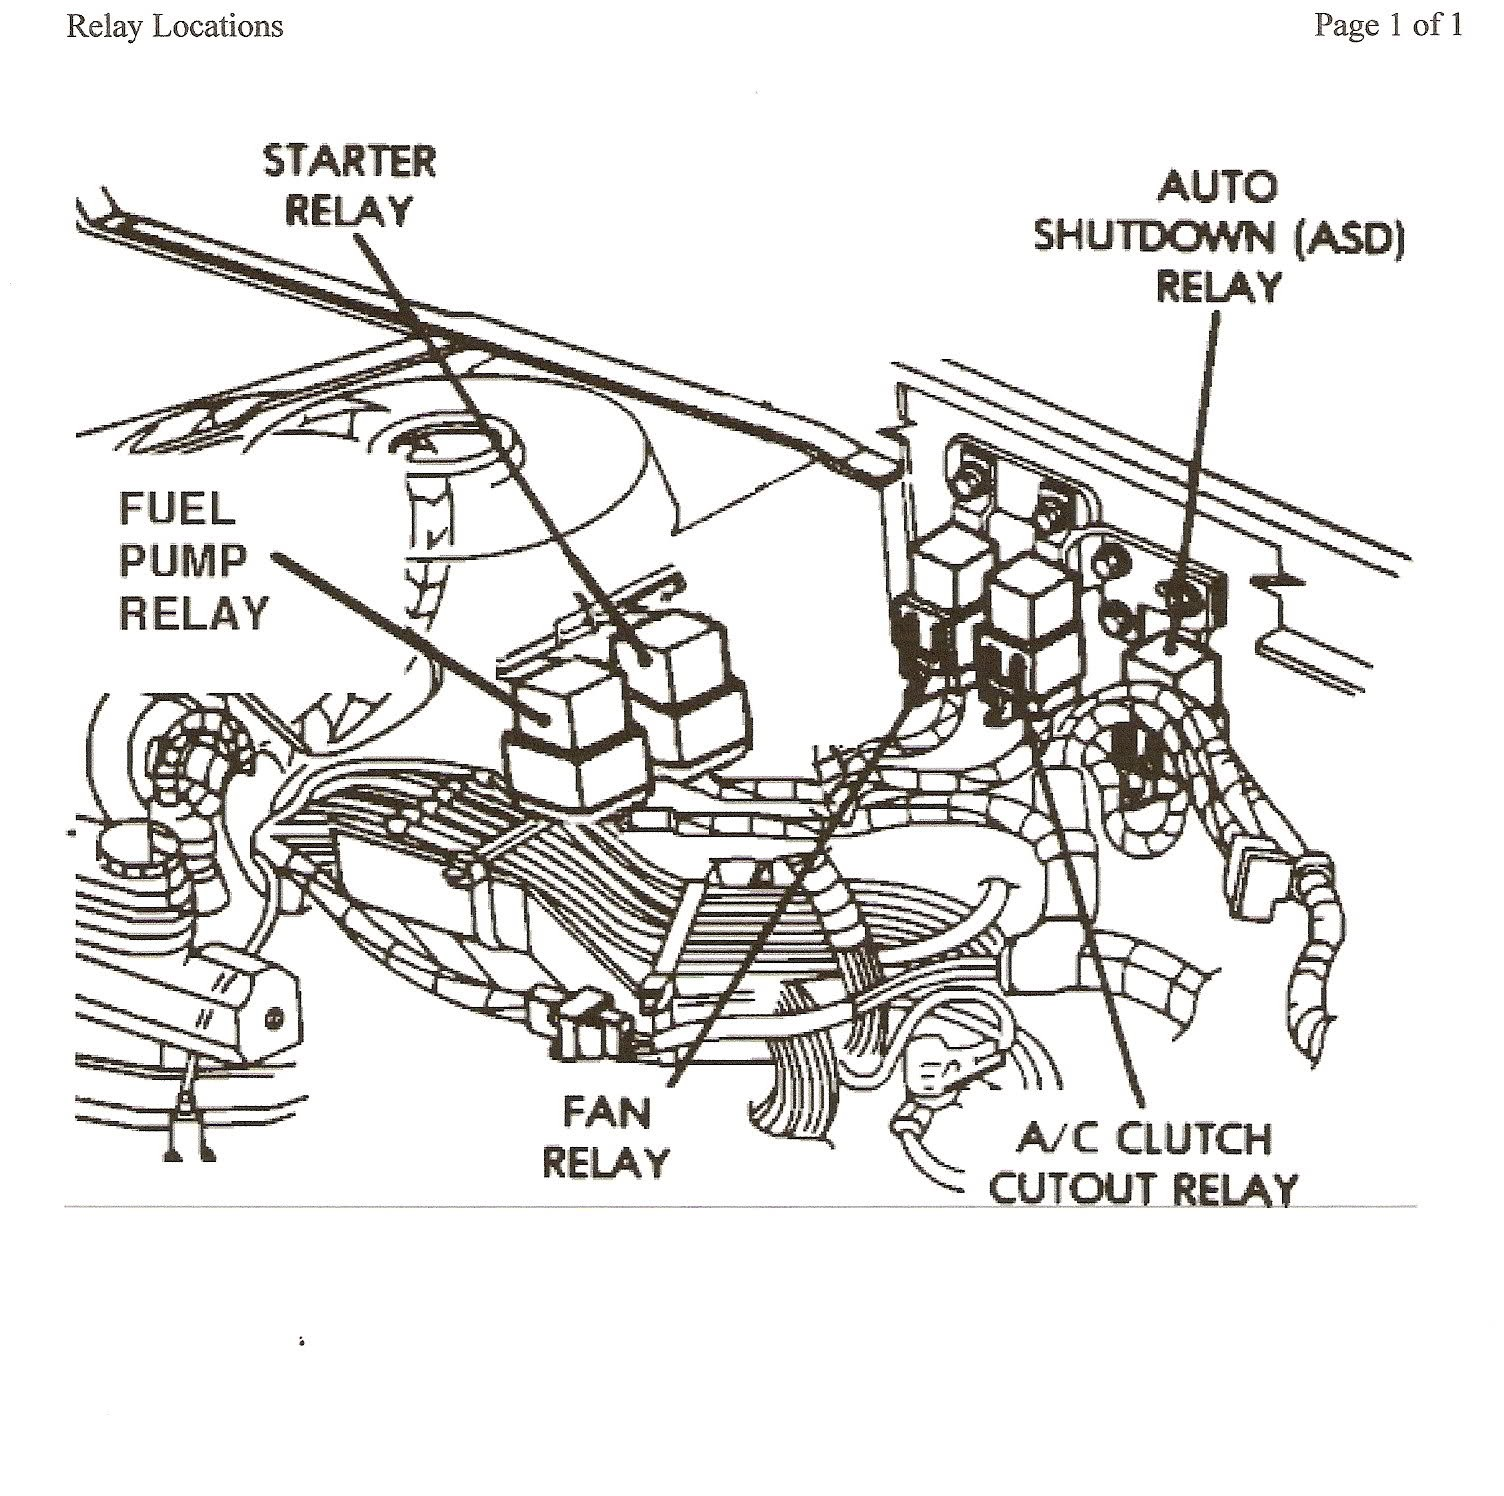 2005 Chrysler Town And Country Wiring Diagram Simple Guide About Blower Motor 07 300 Starter 5 7 Hemi